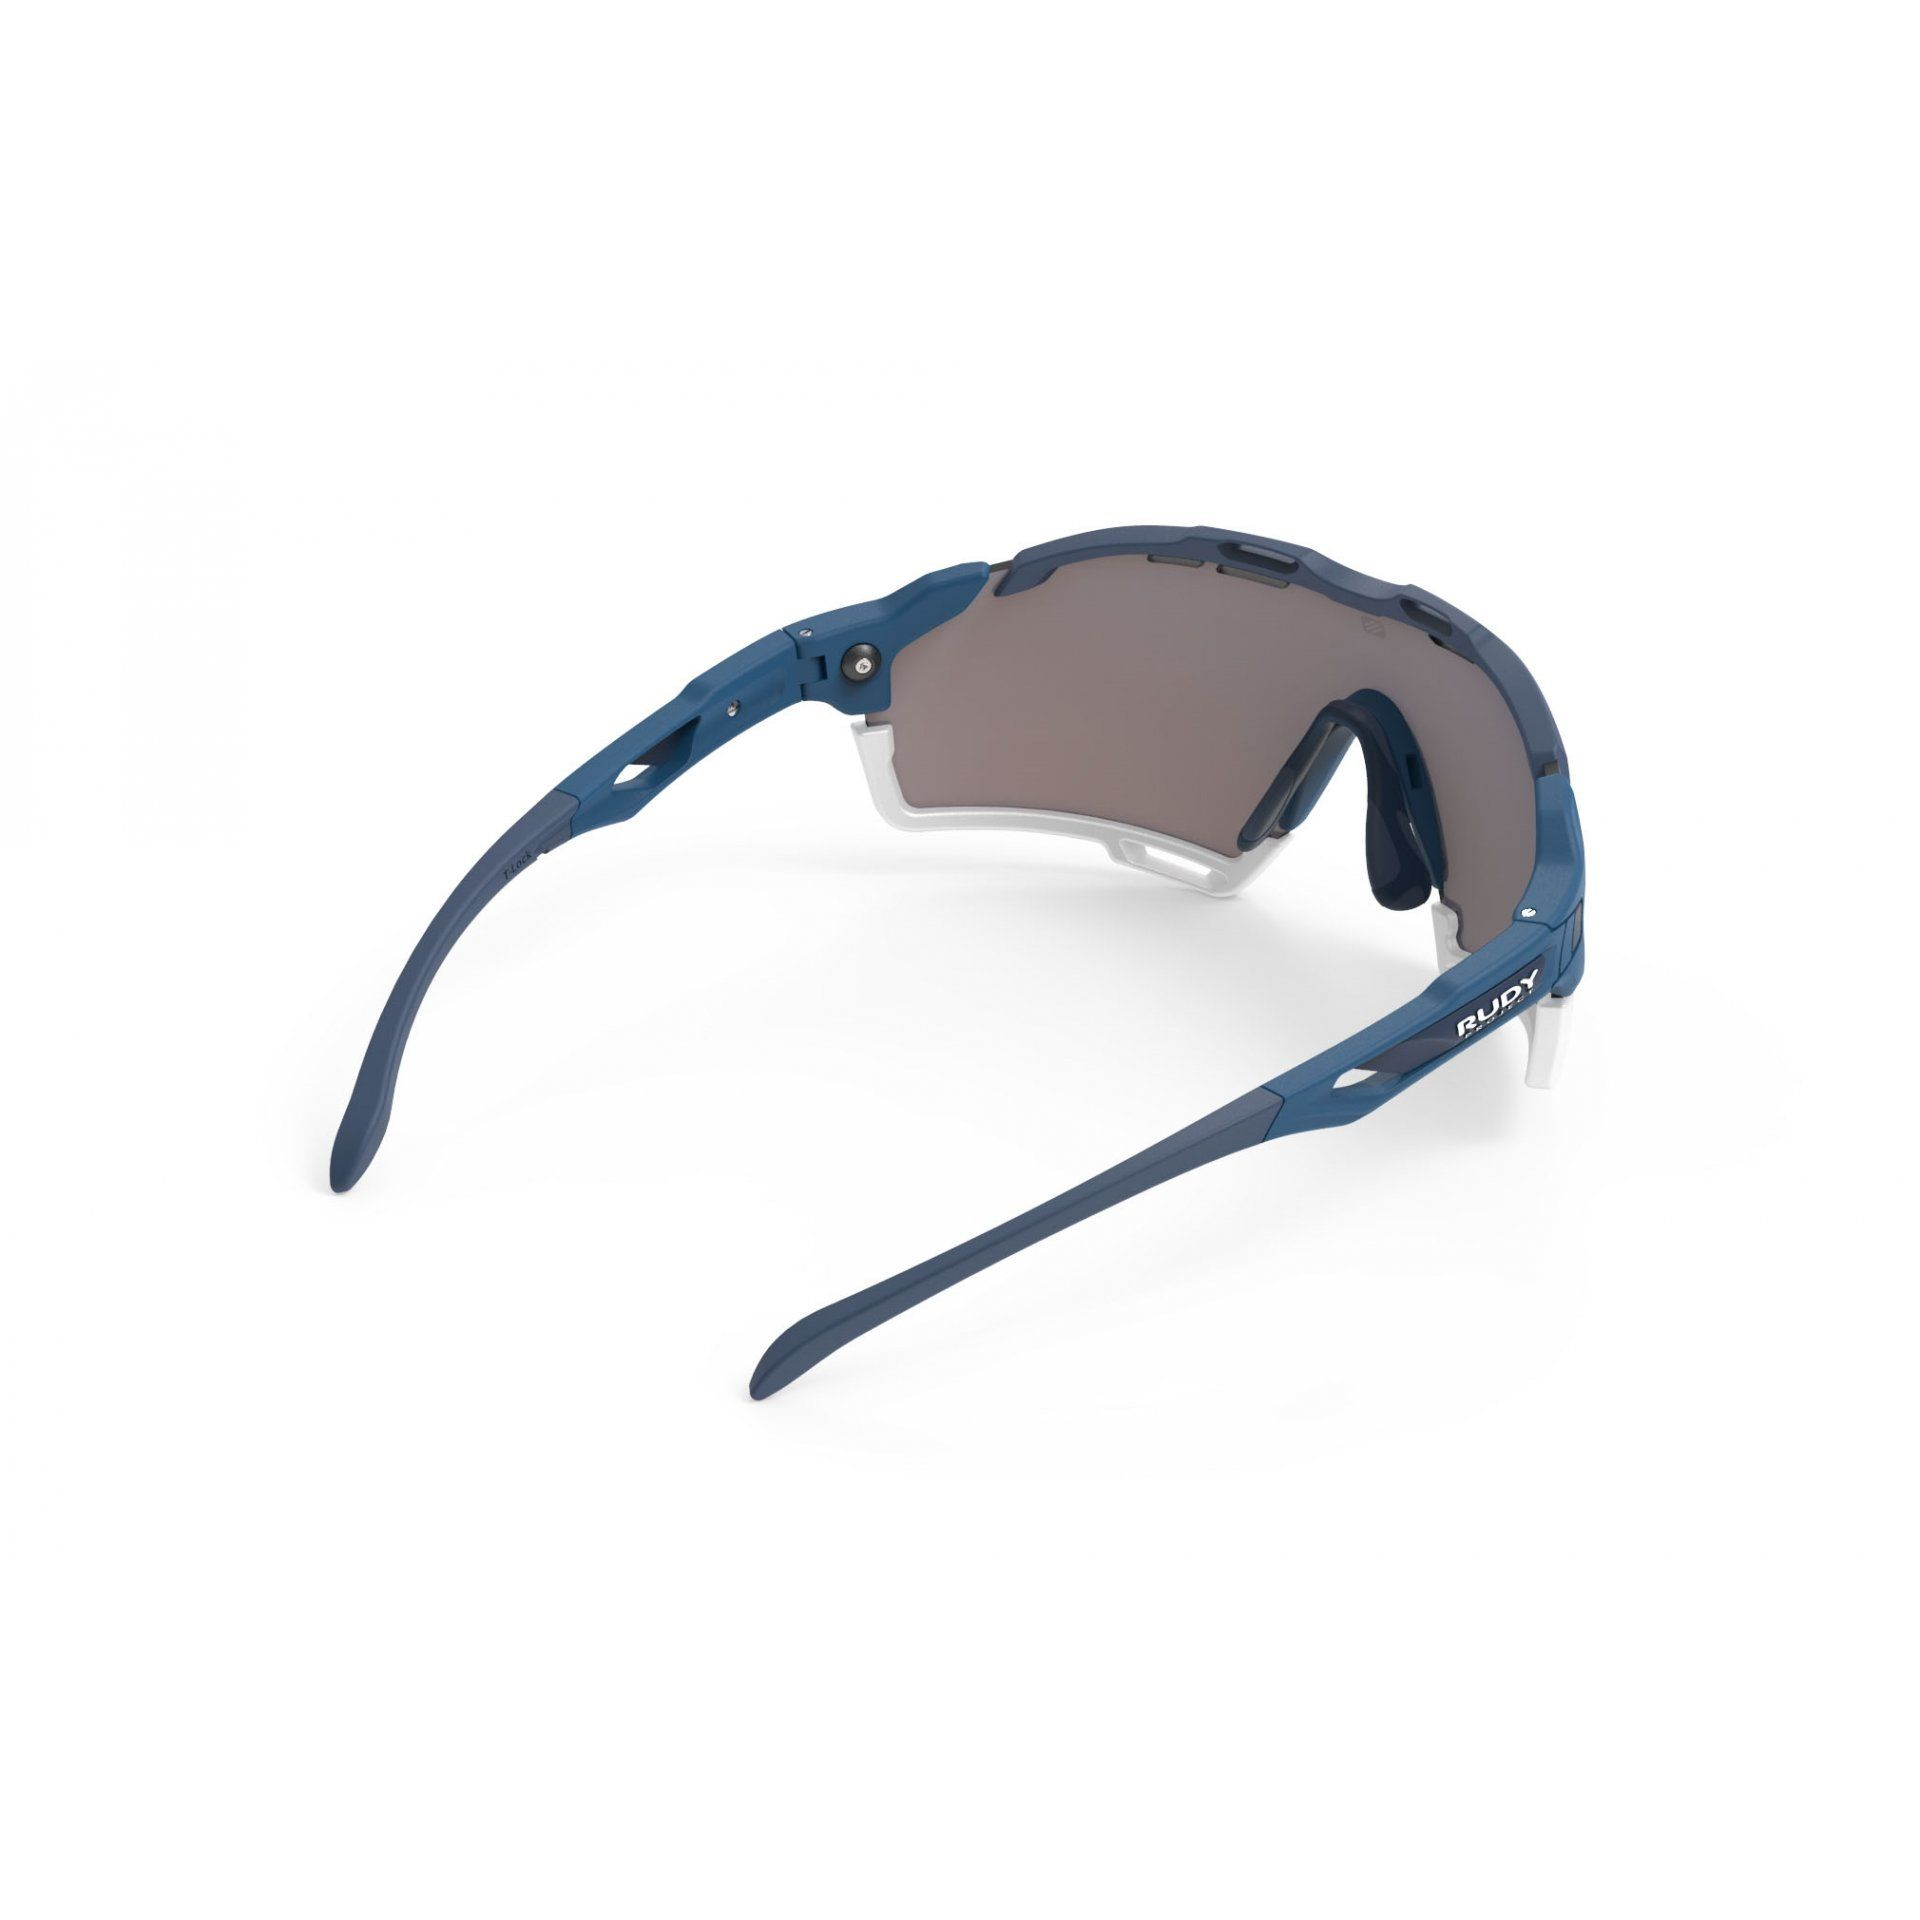 OKULARY RUDY PROJECT CUTLINE PACIFIC BLUE MATTE+MULTILASER ICE 5